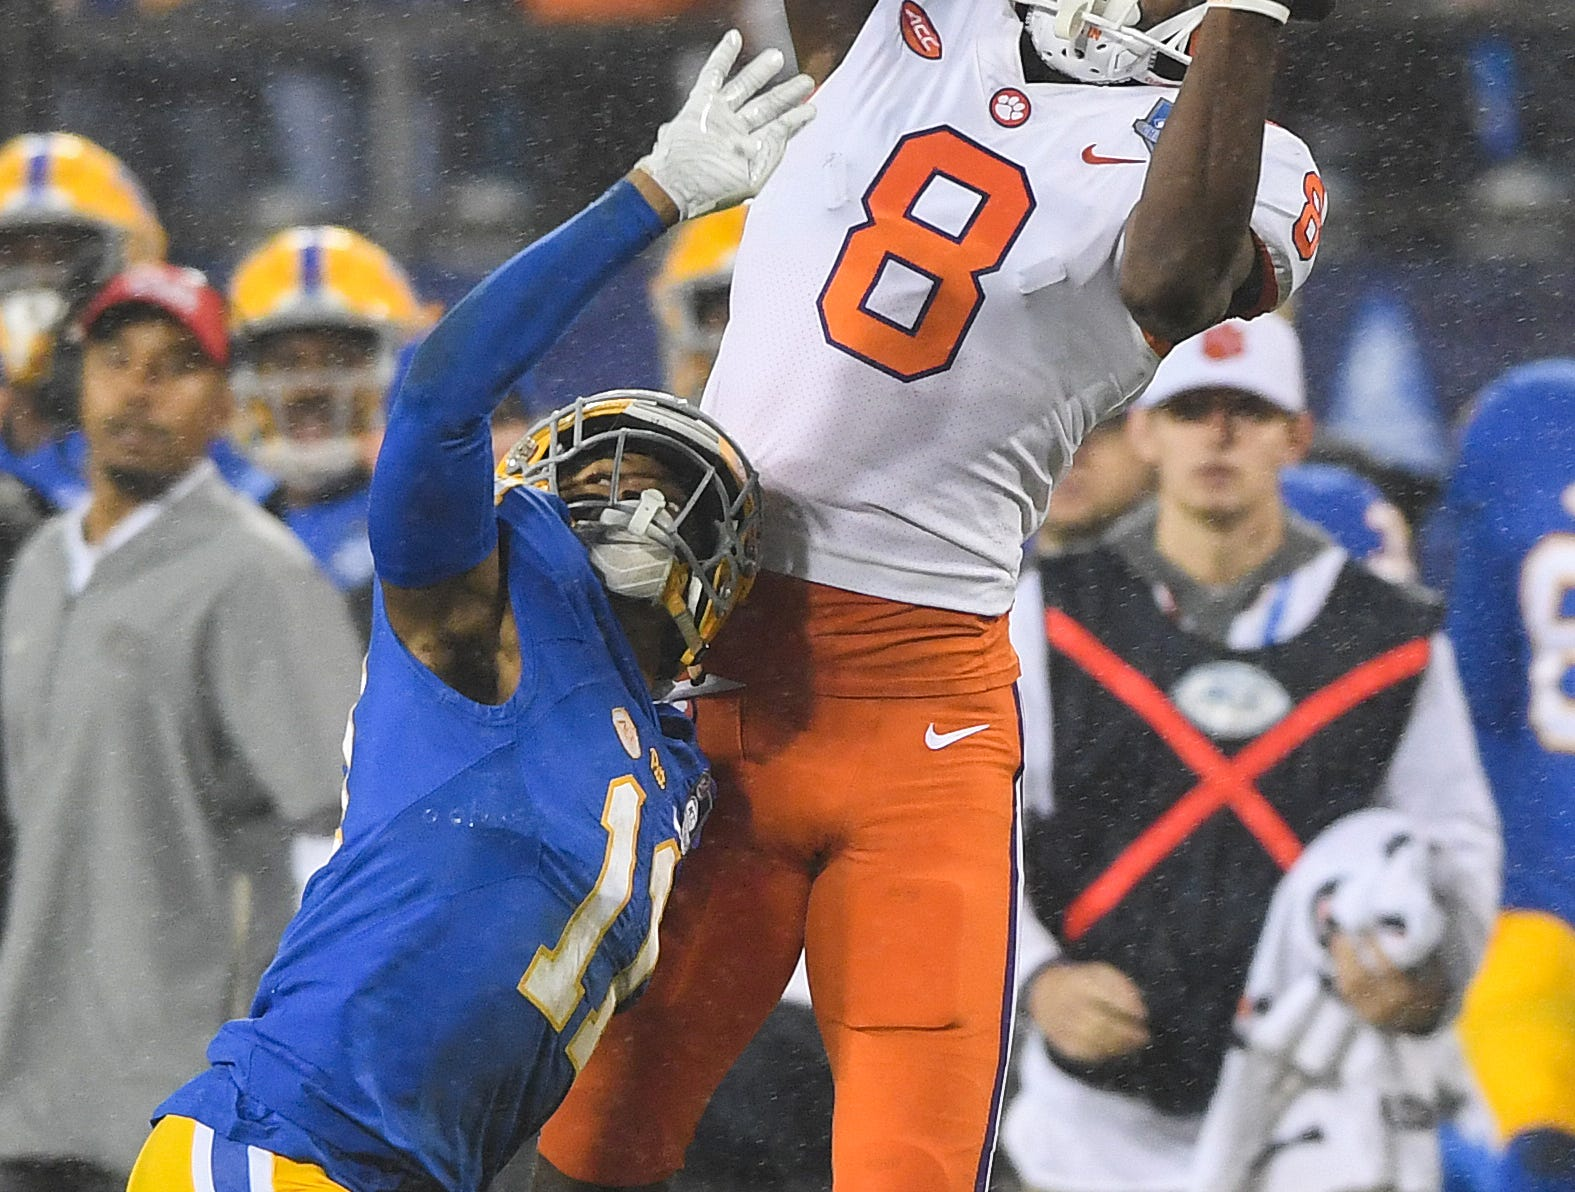 Clemson wide receiver Justyn Ross (8) makes a catch over Pittsburgh defensive back Dane Jackson (11) during the 1st quarter of the Dr. Pepper ACC Championship at Bank of America Stadium in Charlotte, N.C. Saturday, December 1, 2018.